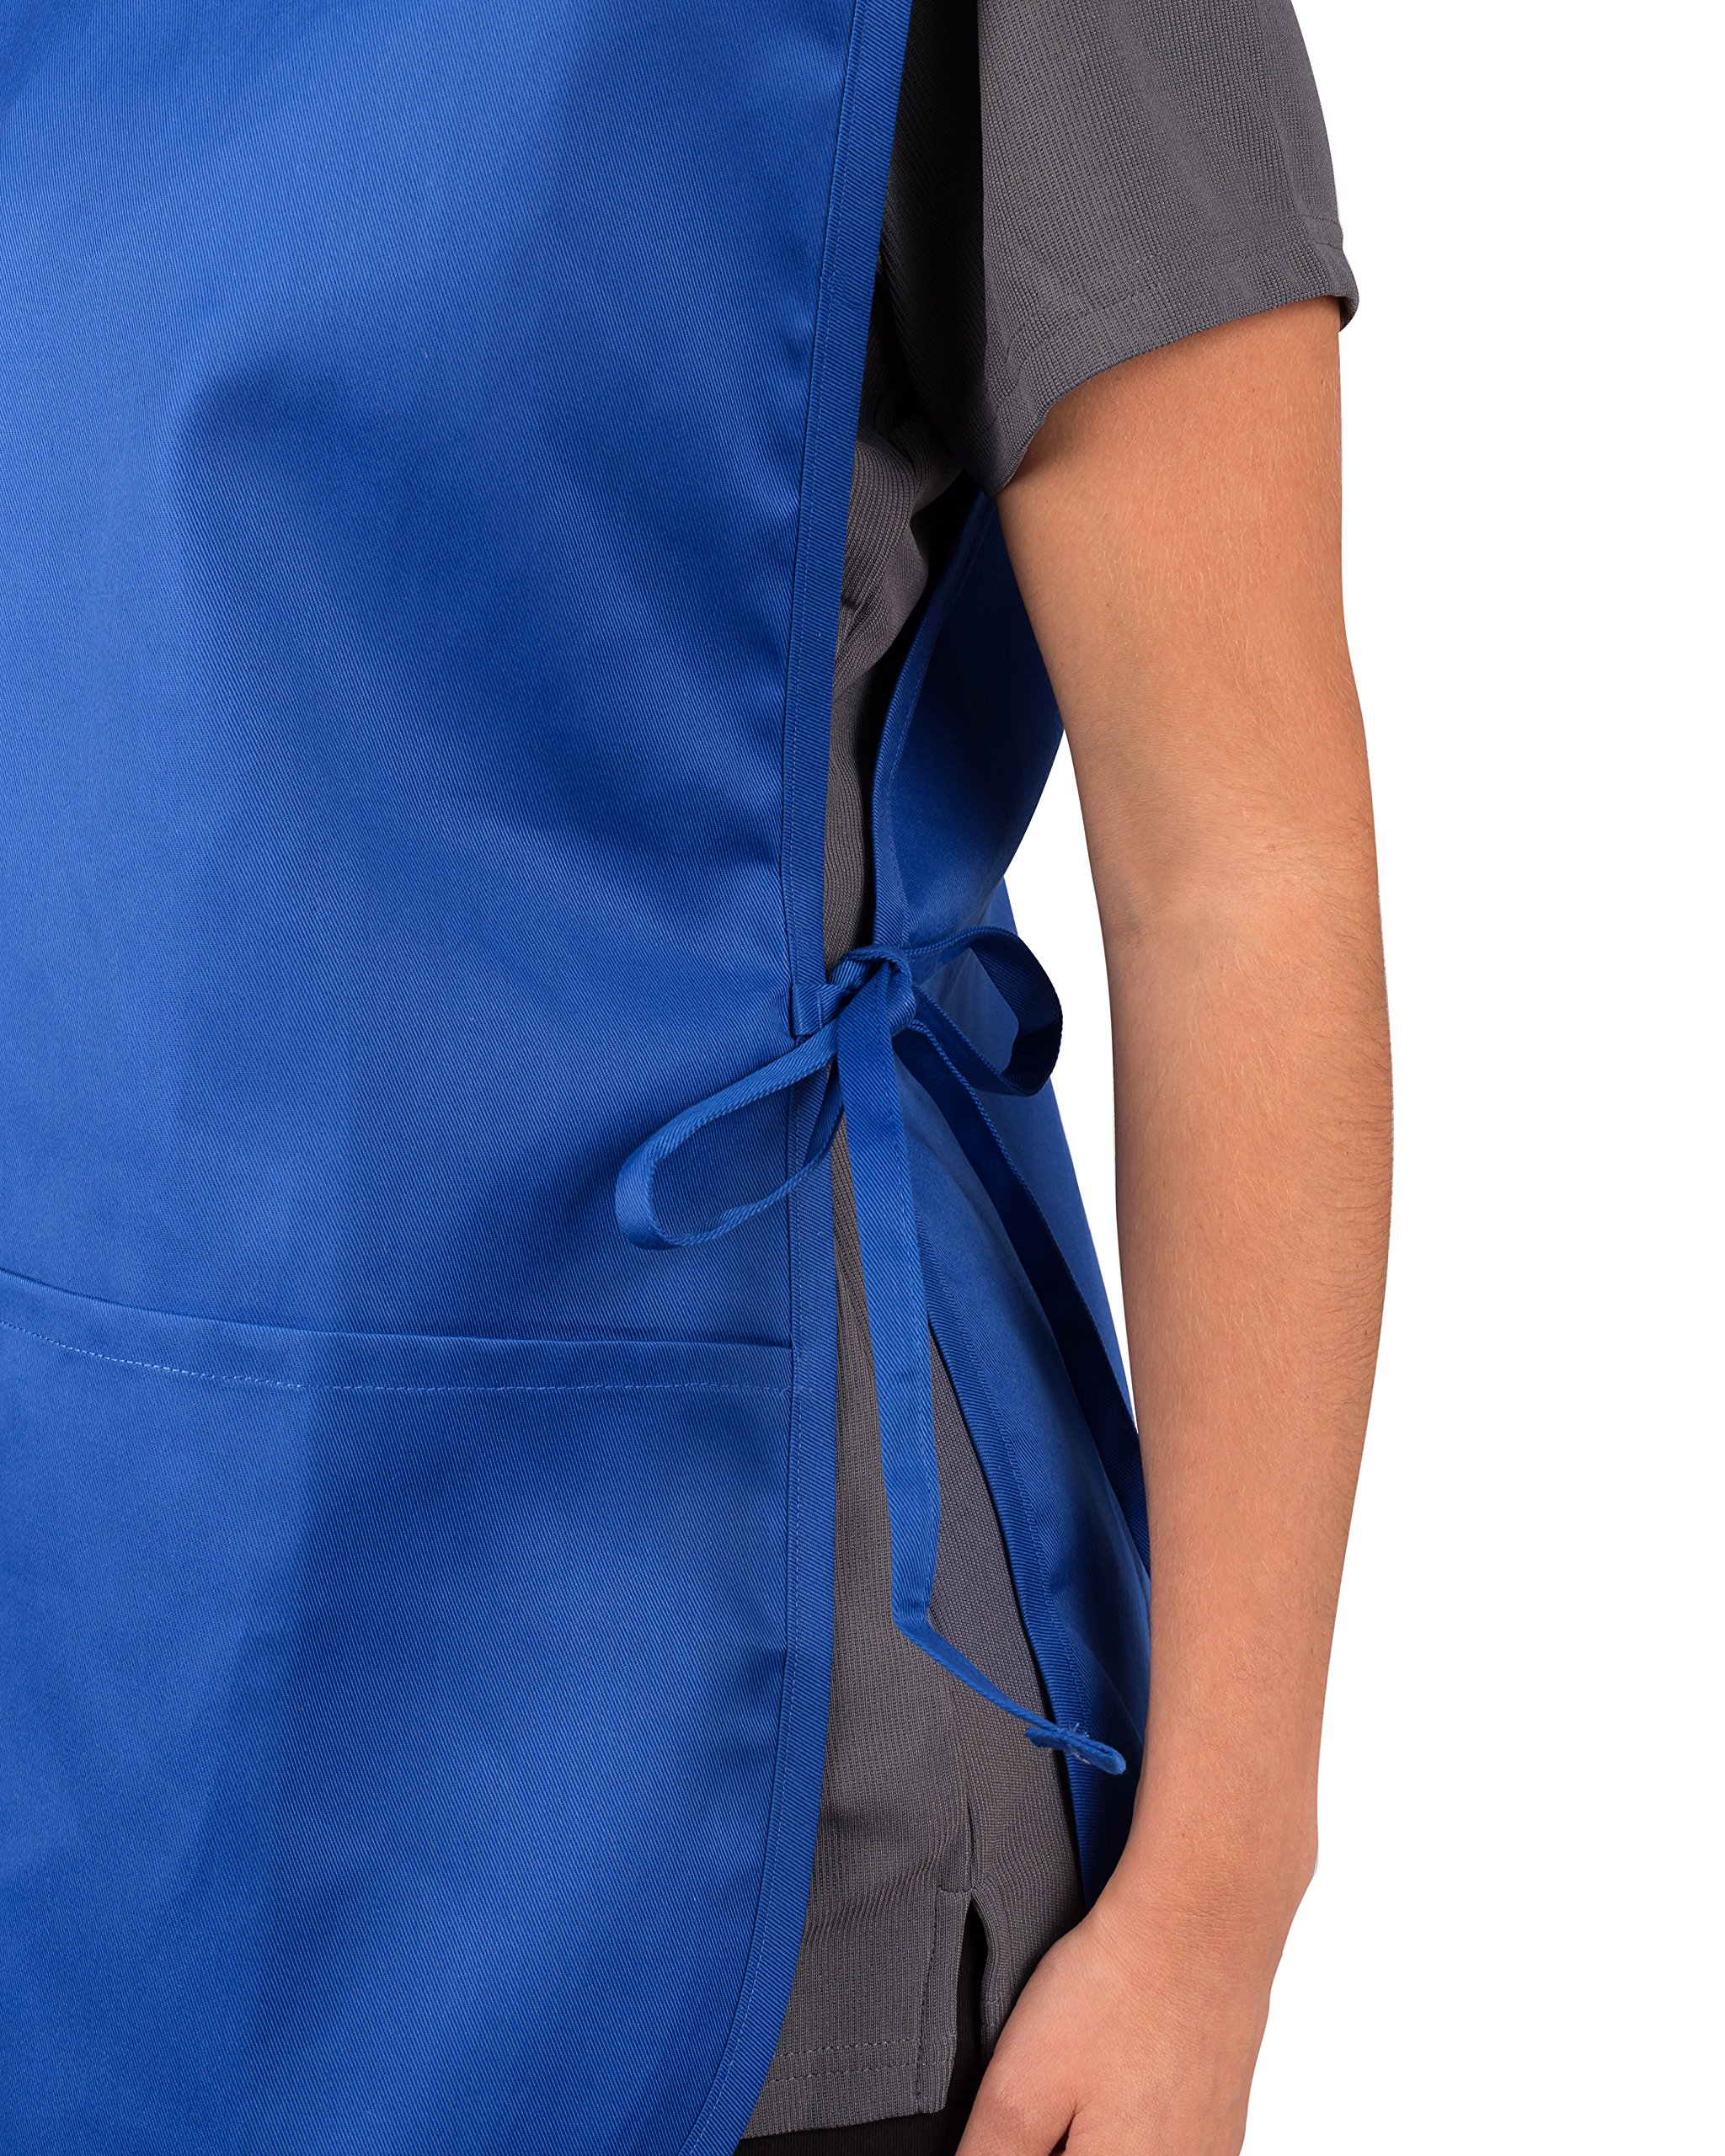 Royal Blue Cobbler Apron, Pack of 36 by KNG (Image #5)